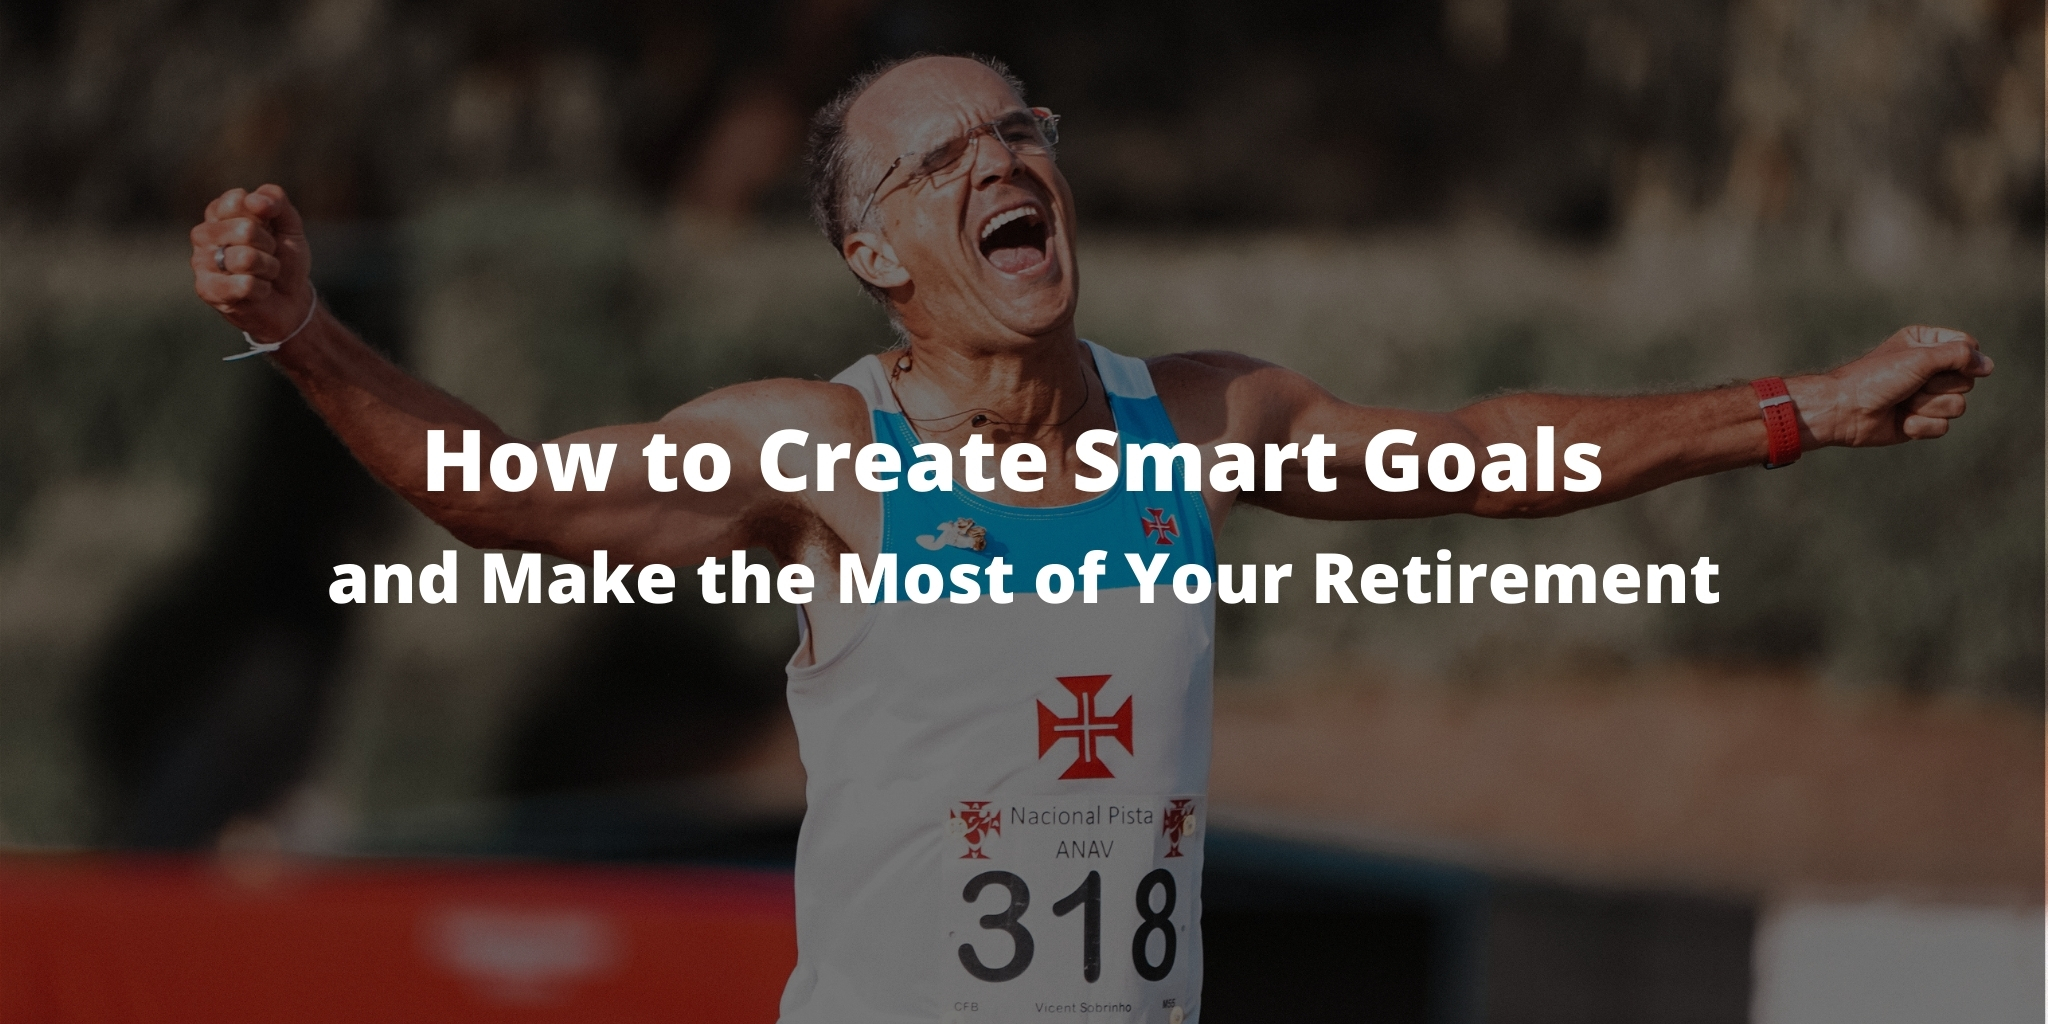 How to Create SMART Goals and Make the Most of Your Retirement